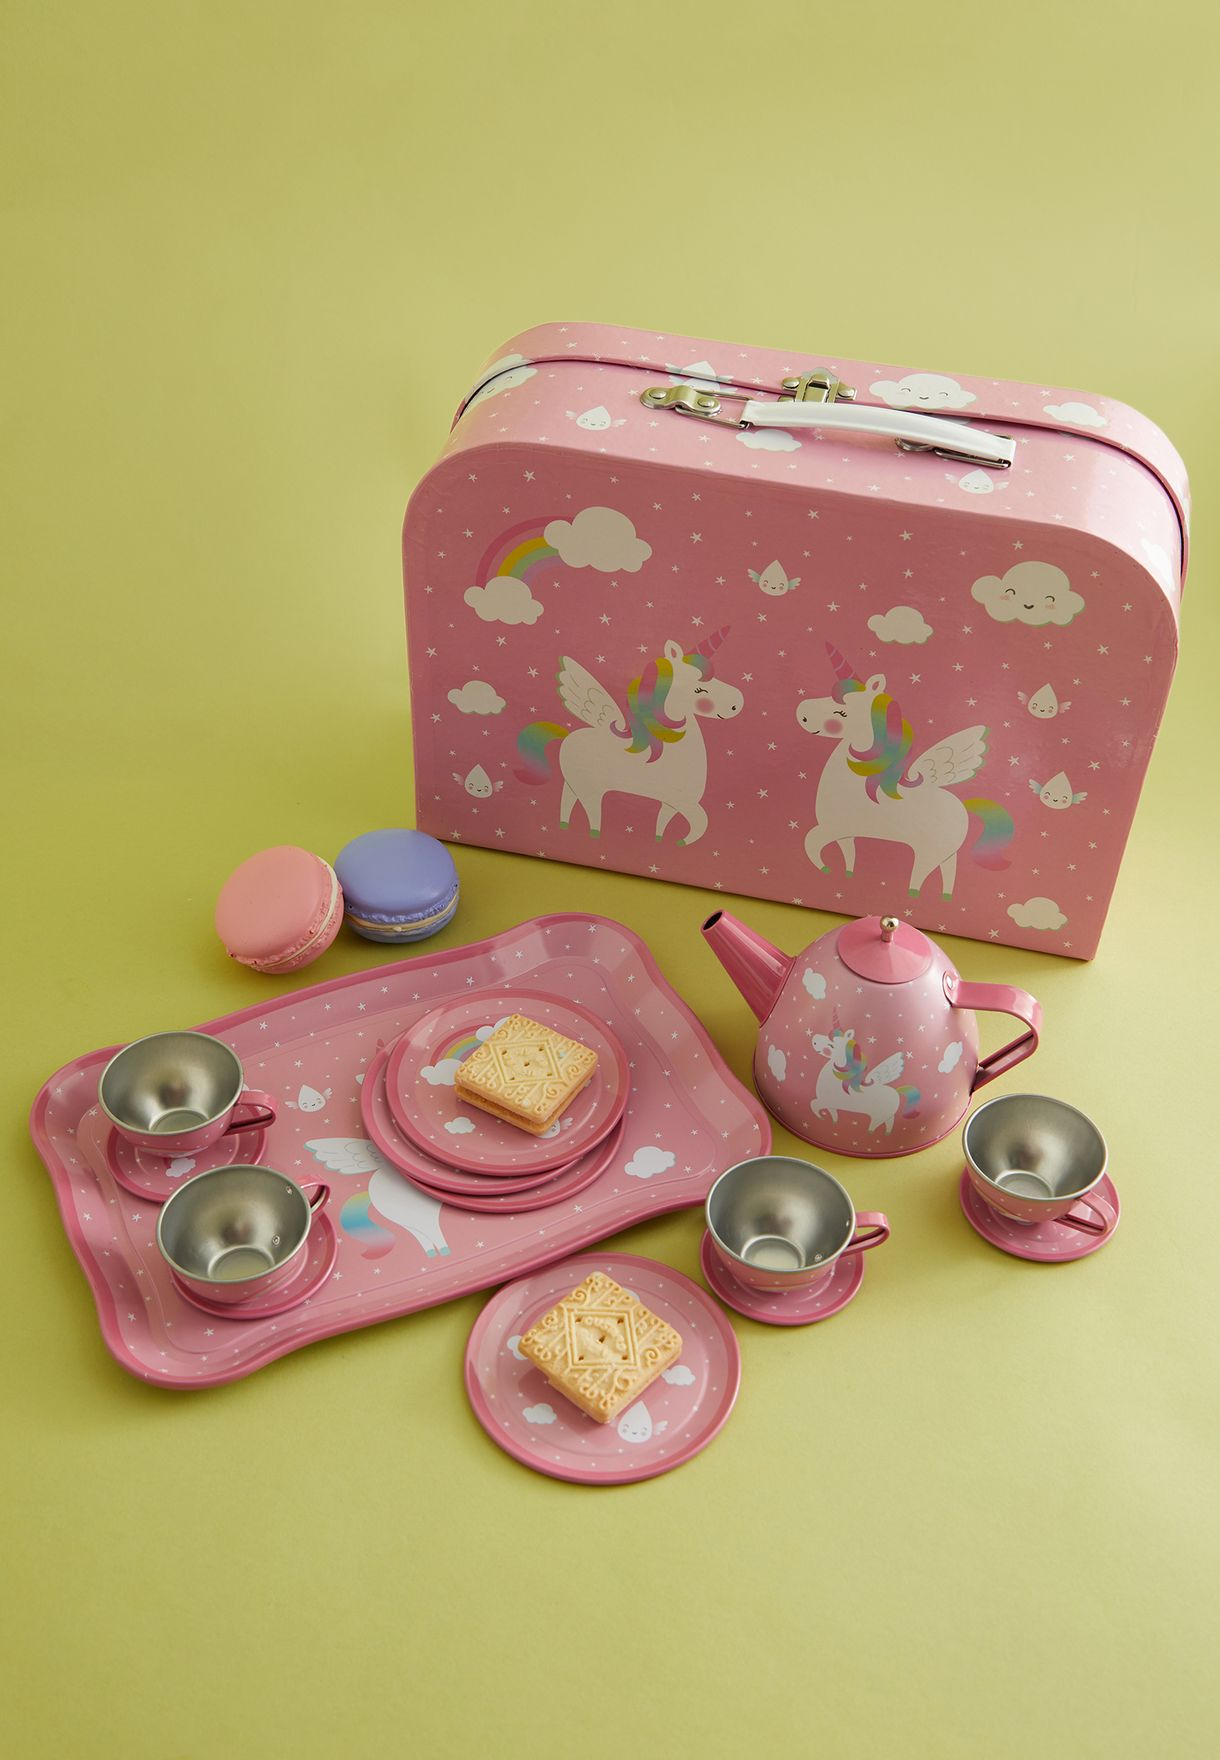 Rainbow Unicorn Picnic Tea Set